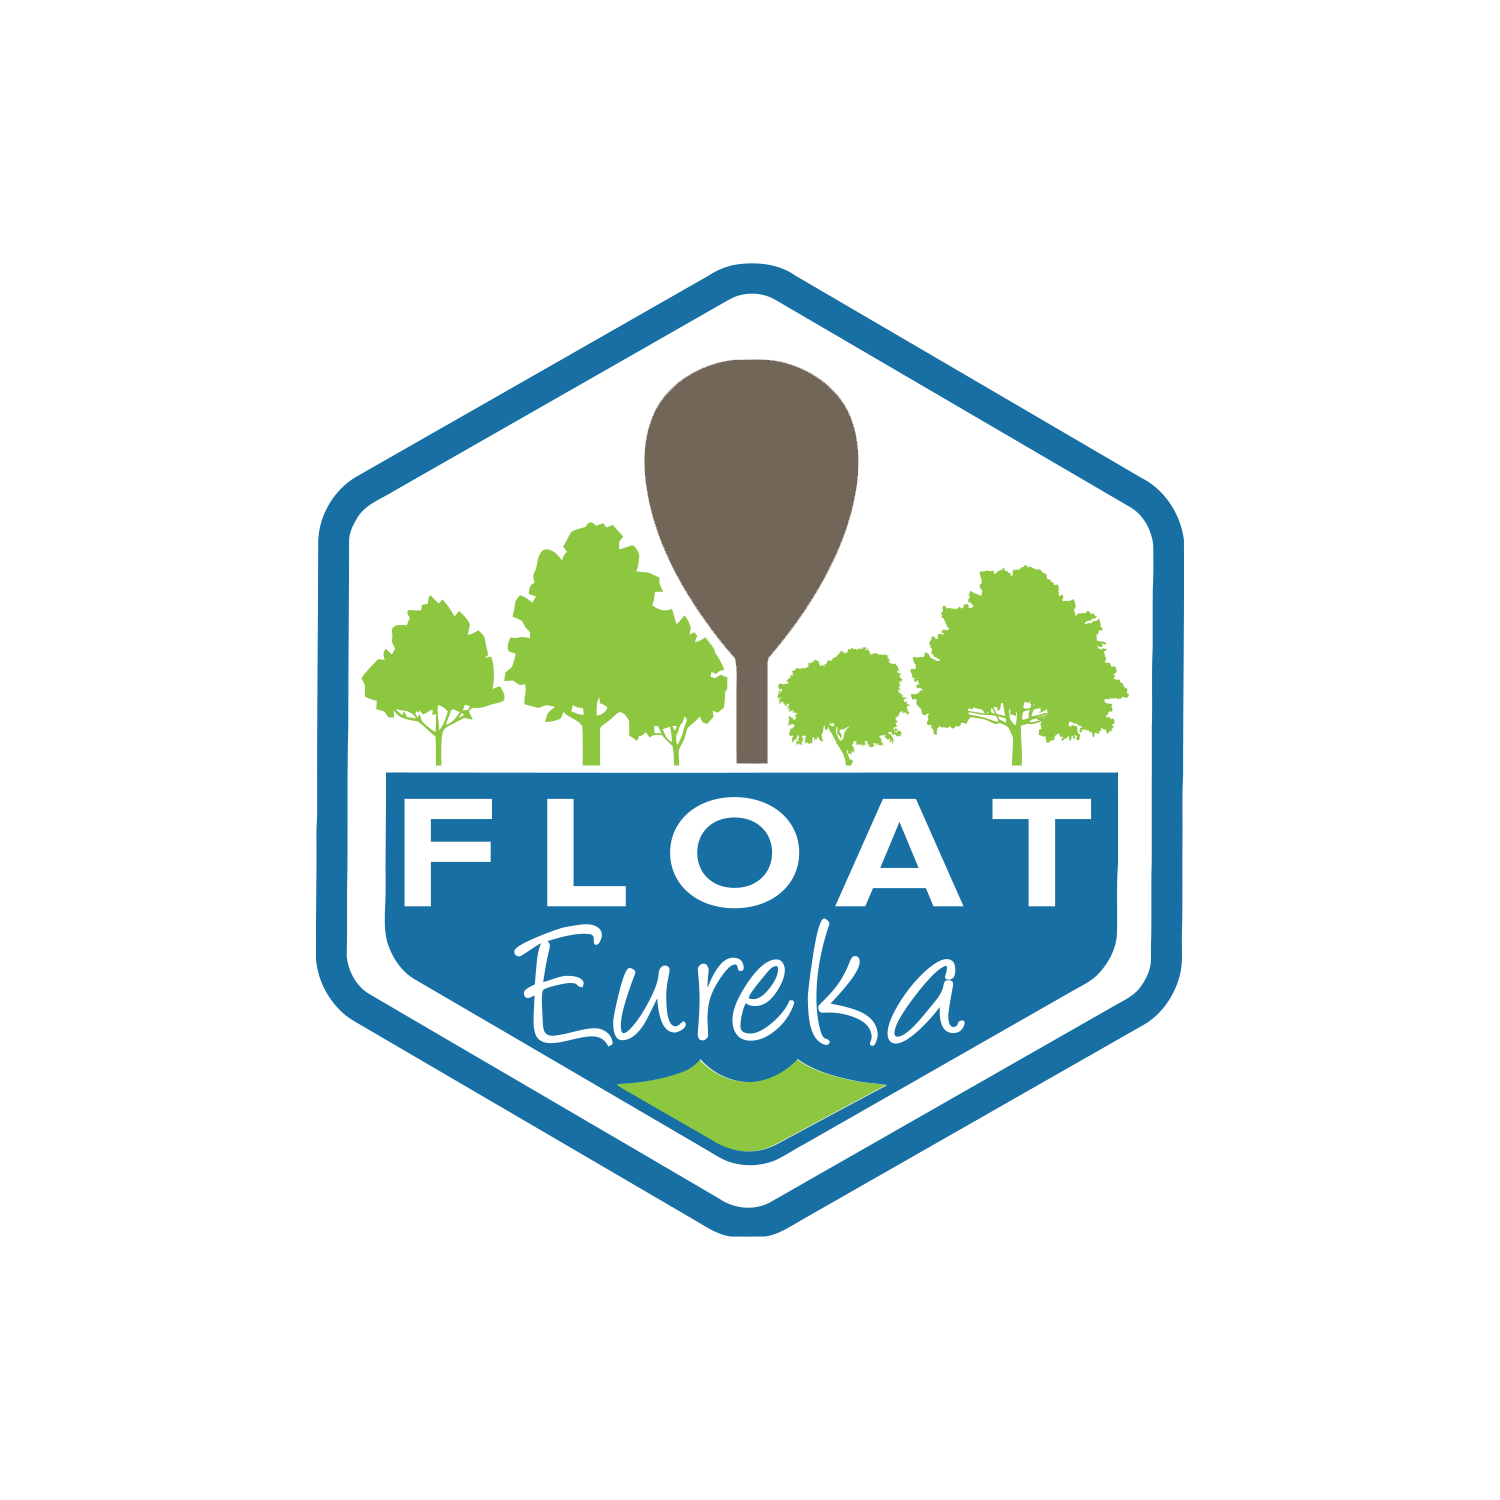 Float Eureka: Choose your adventure.